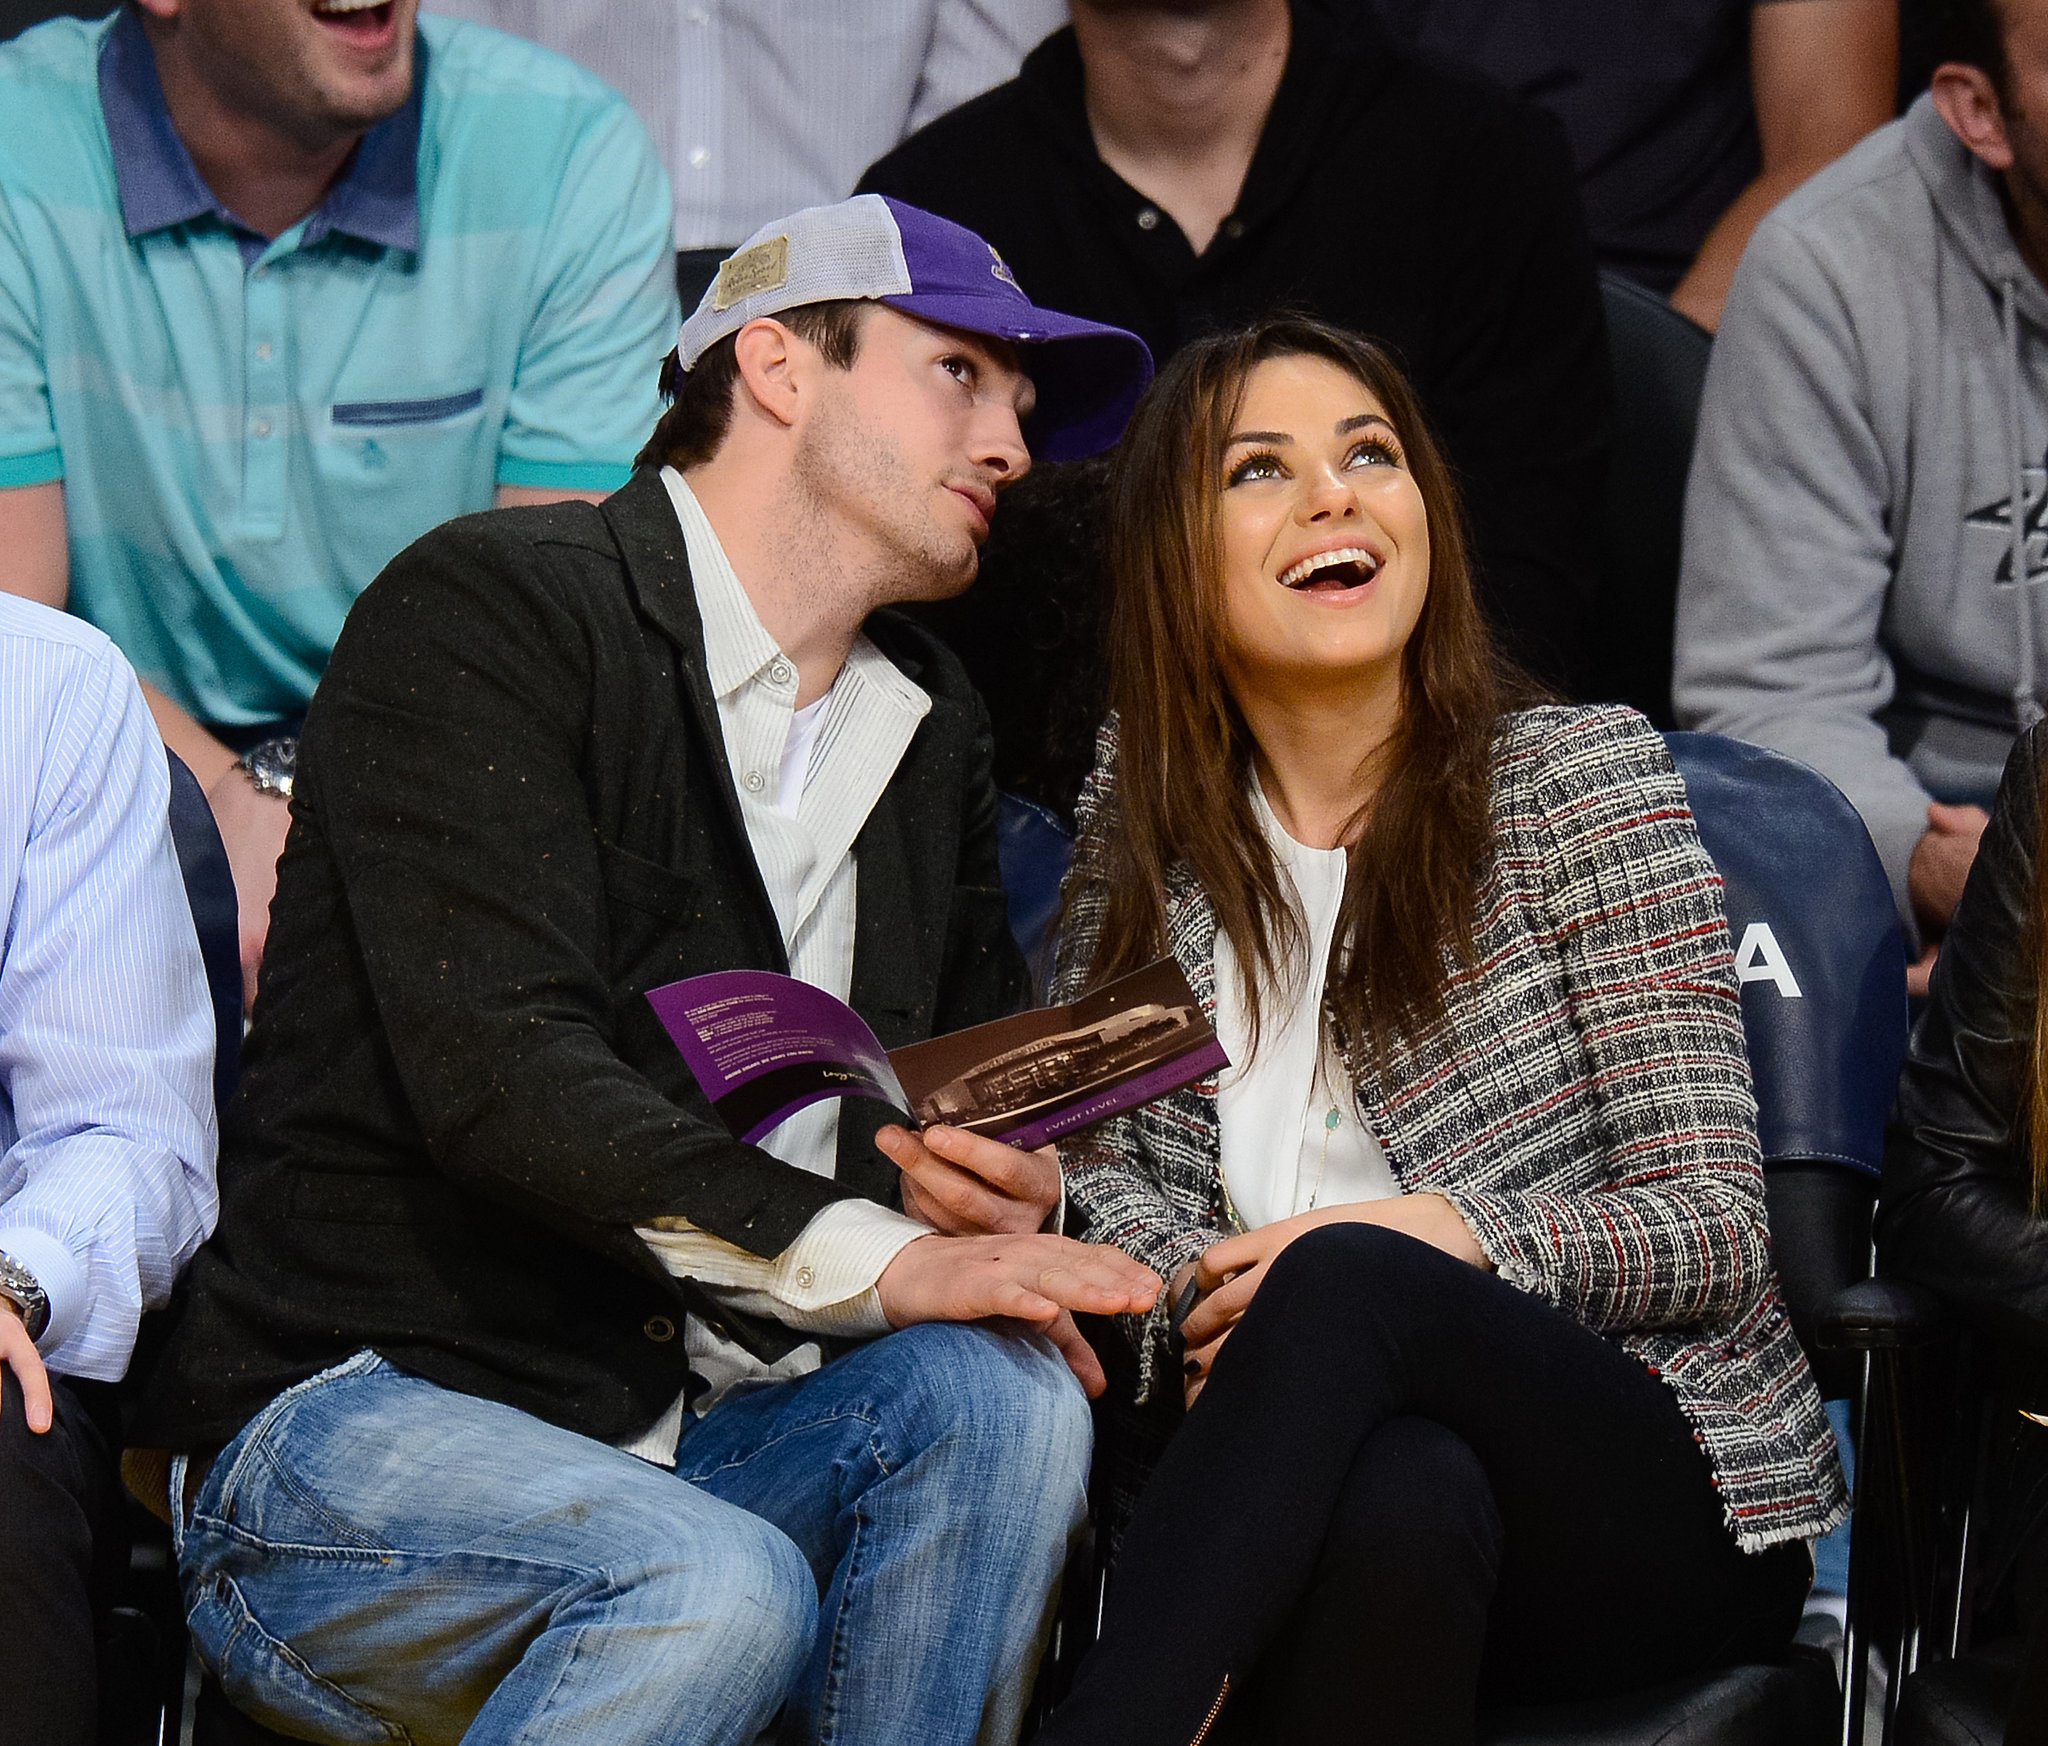 Ashton Kutcher and Mila Kunis were enthralled in the game between the LA Lakers and New Orleans Pelicans in early March.